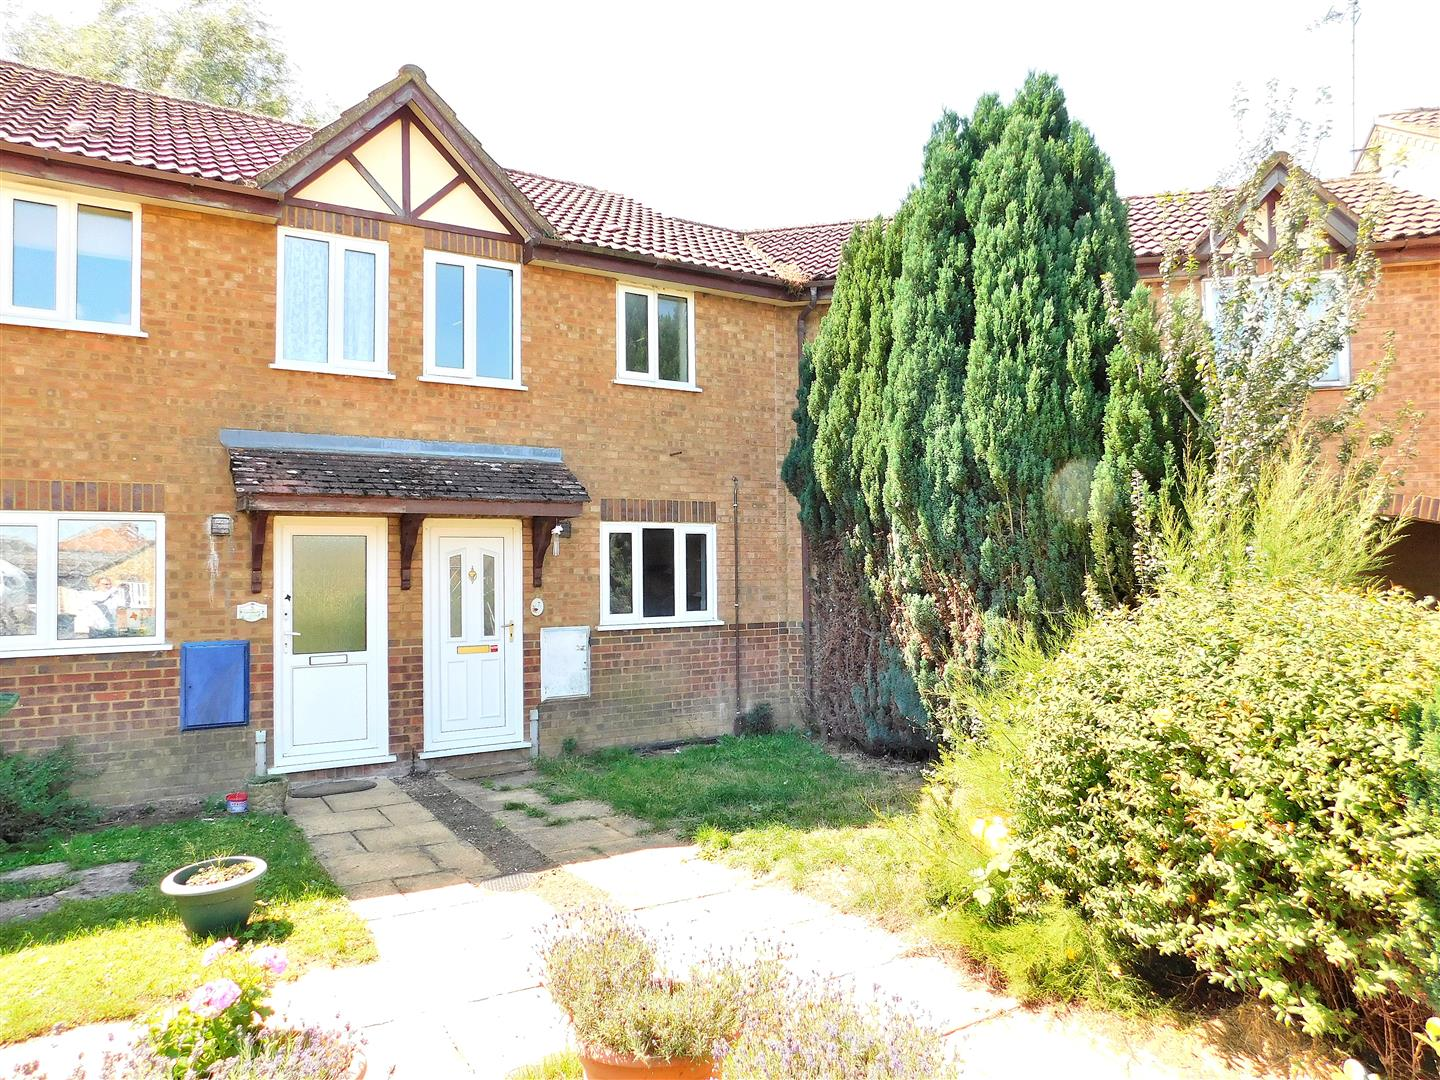 2 bed terraced house for sale in King's Lynn, PE34 4RQ  - Property Image 1